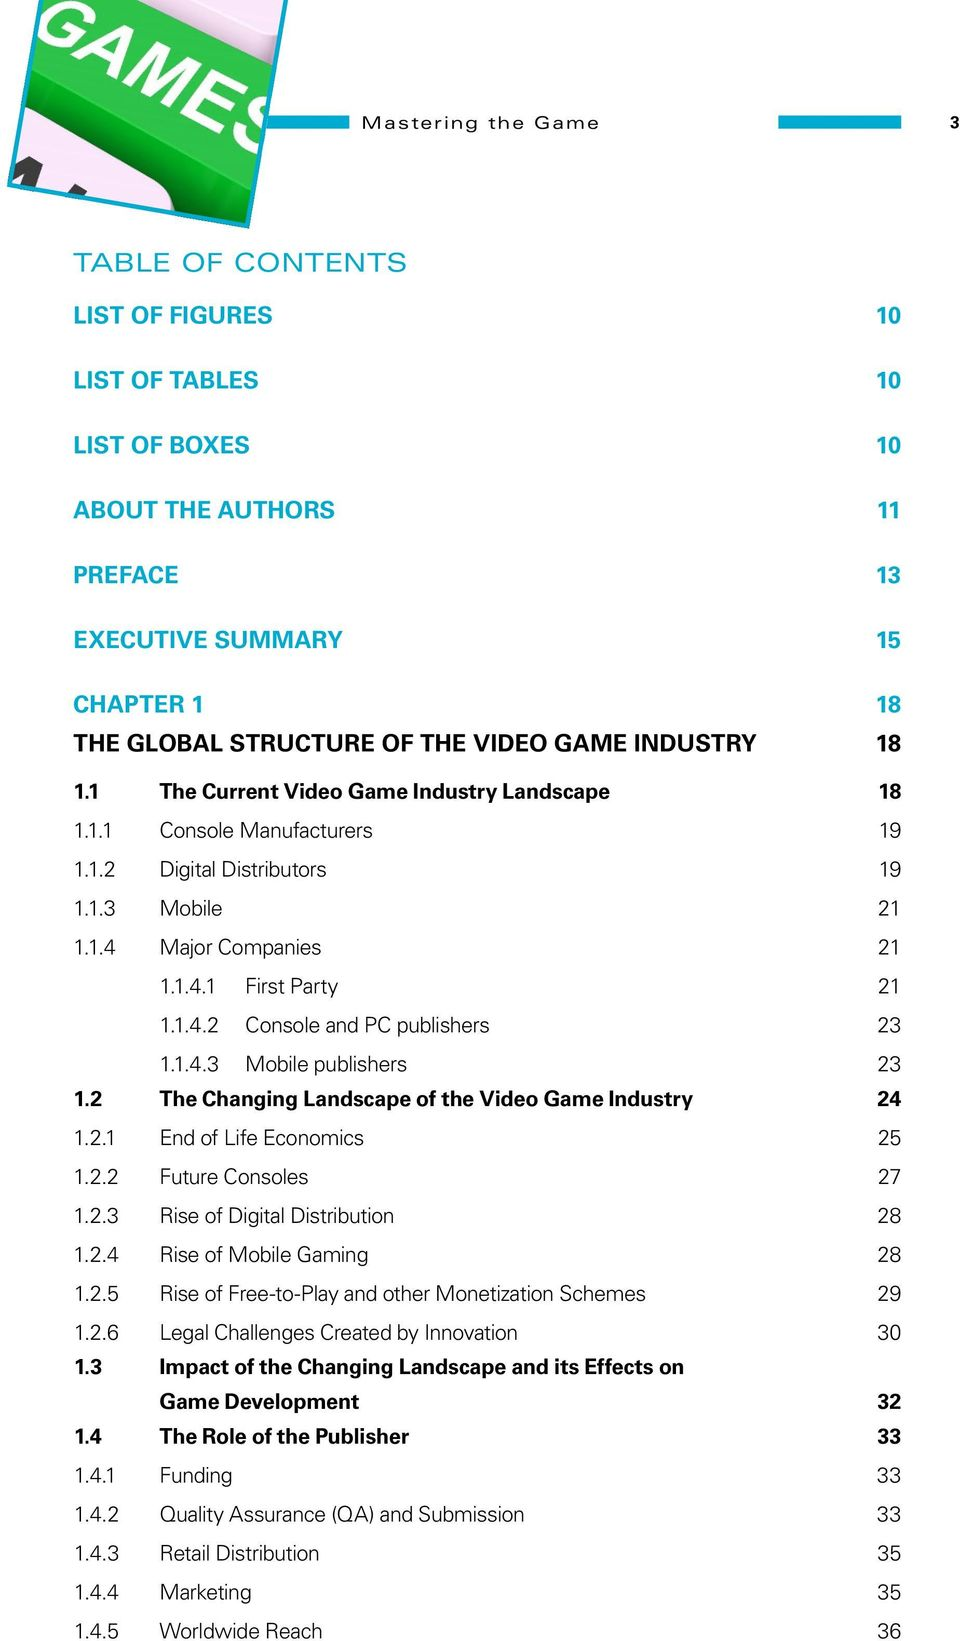 1.4.3 Mobile publishers 23 1.2 The Changing Landscape of the Video Game Industry 24 1.2.1 End of Life Economics 25 1.2.2 Future Consoles 27 1.2.3 Rise of Digital Distribution 28 1.2.4 Rise of Mobile Gaming 28 1.